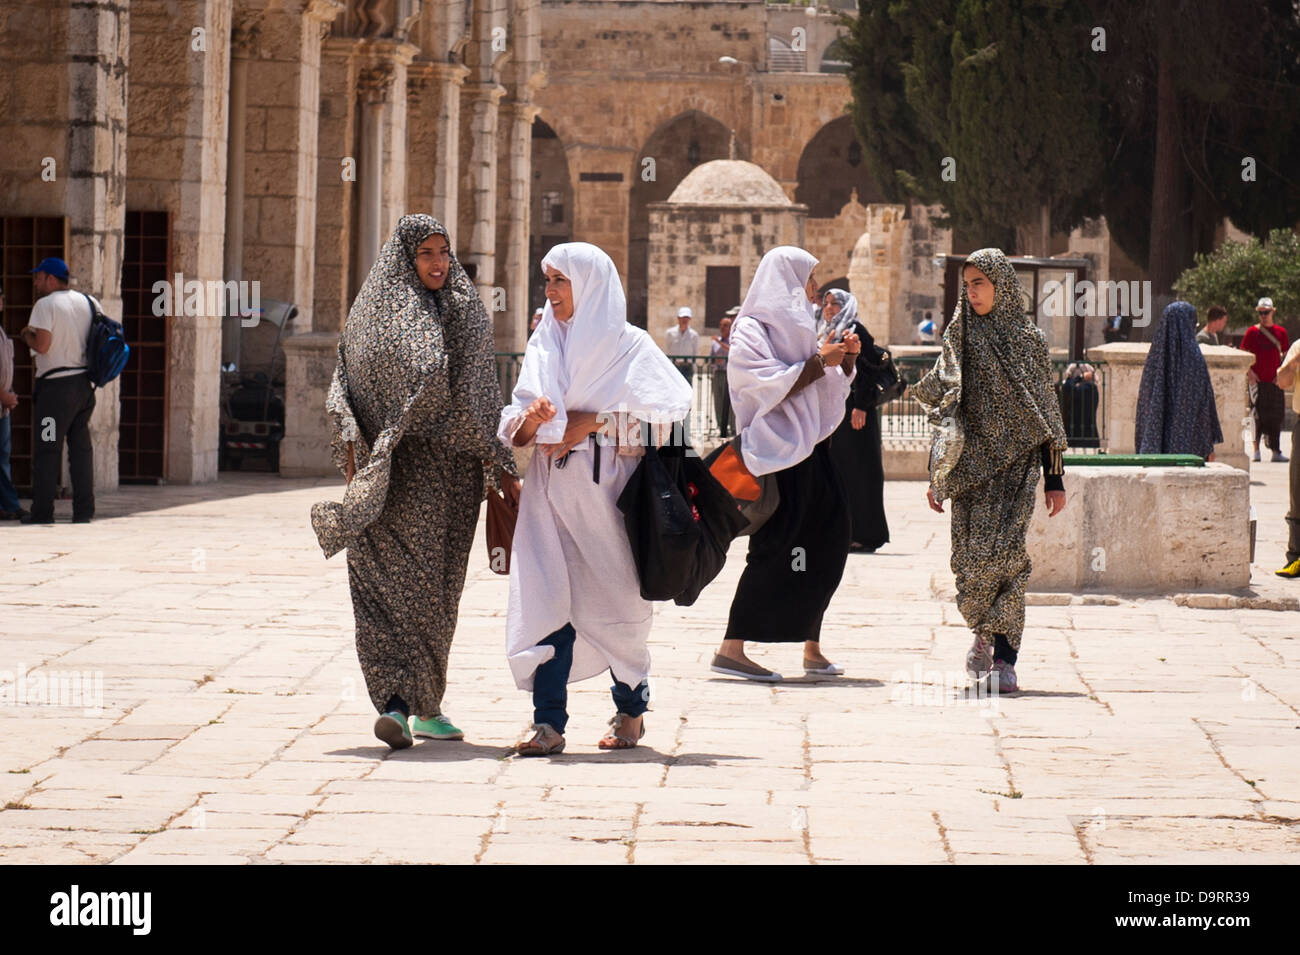 Israel Old City Jerusalem Haram Esh Sharif Noble Sanctuary Temple Mount Dome of the Rock El Aqsa Mosque women chatting - Stock Image